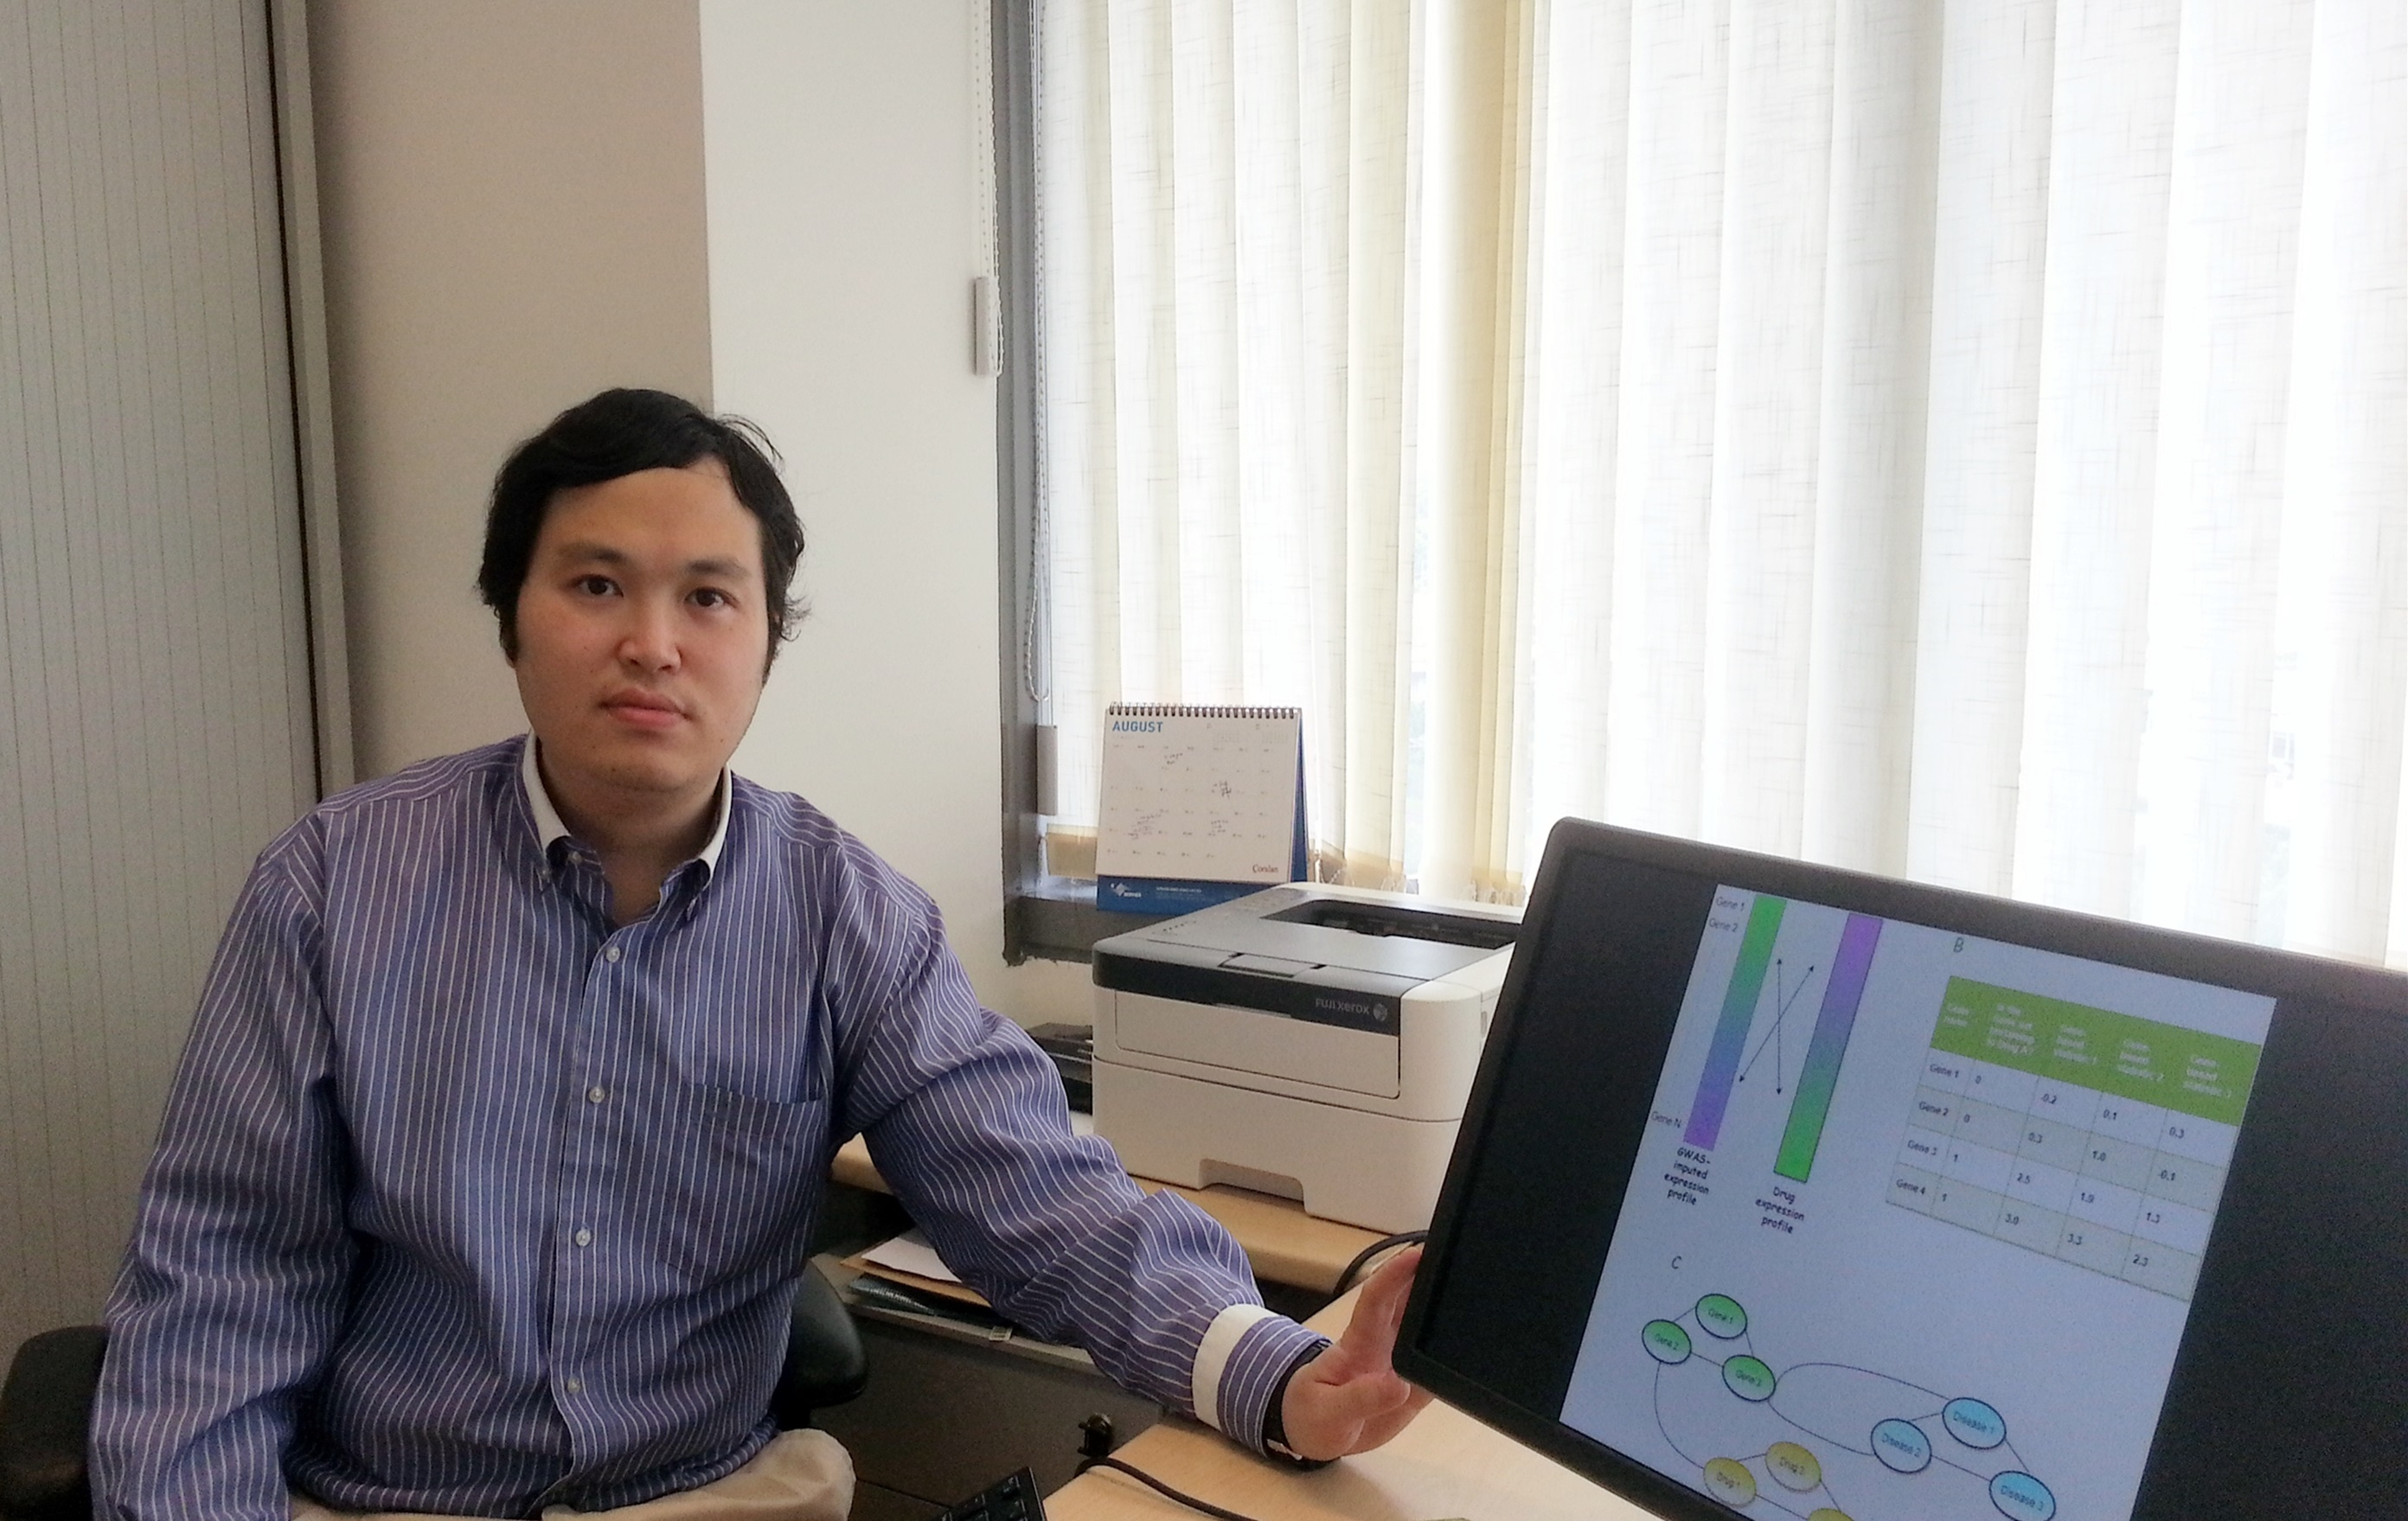 Results of the study led by Dr. Hon Cheong SO, Assistant Professor of the School of Biomedical Sciences at CU Medicine,  suggested that diabetes may be a risk factor leading to increased susceptibility to or severity of COVID-19 infection through changes in ACE2 expression, which is a key receptor for the virus.